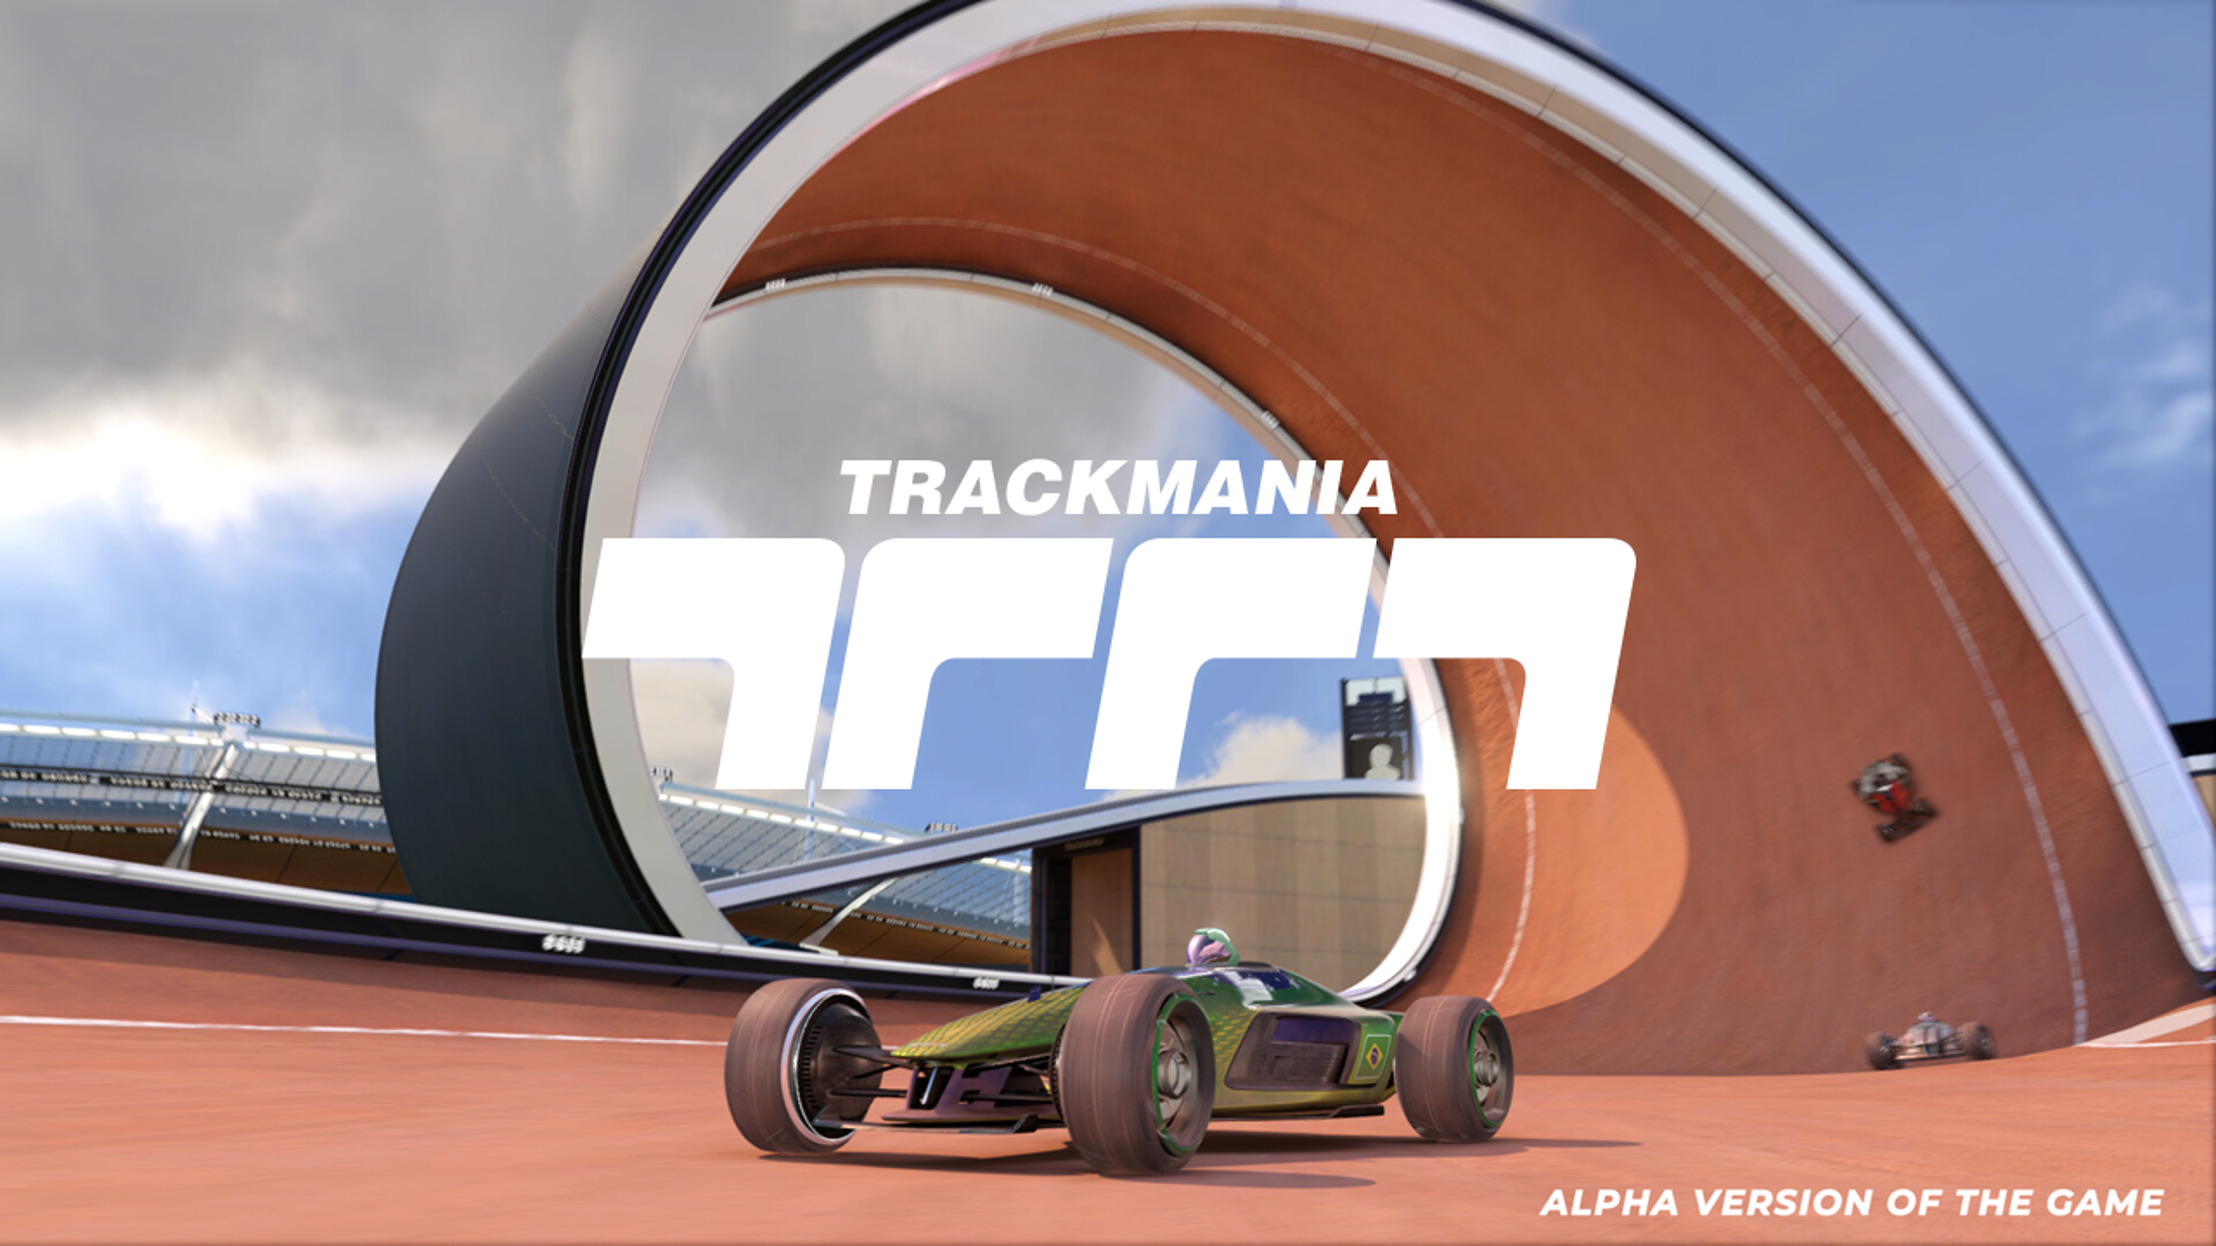 Preview: RACE, CREATE AND COMPETE DIE ULTIMATIVE TRACKMANIA®-ERFAHRUNG